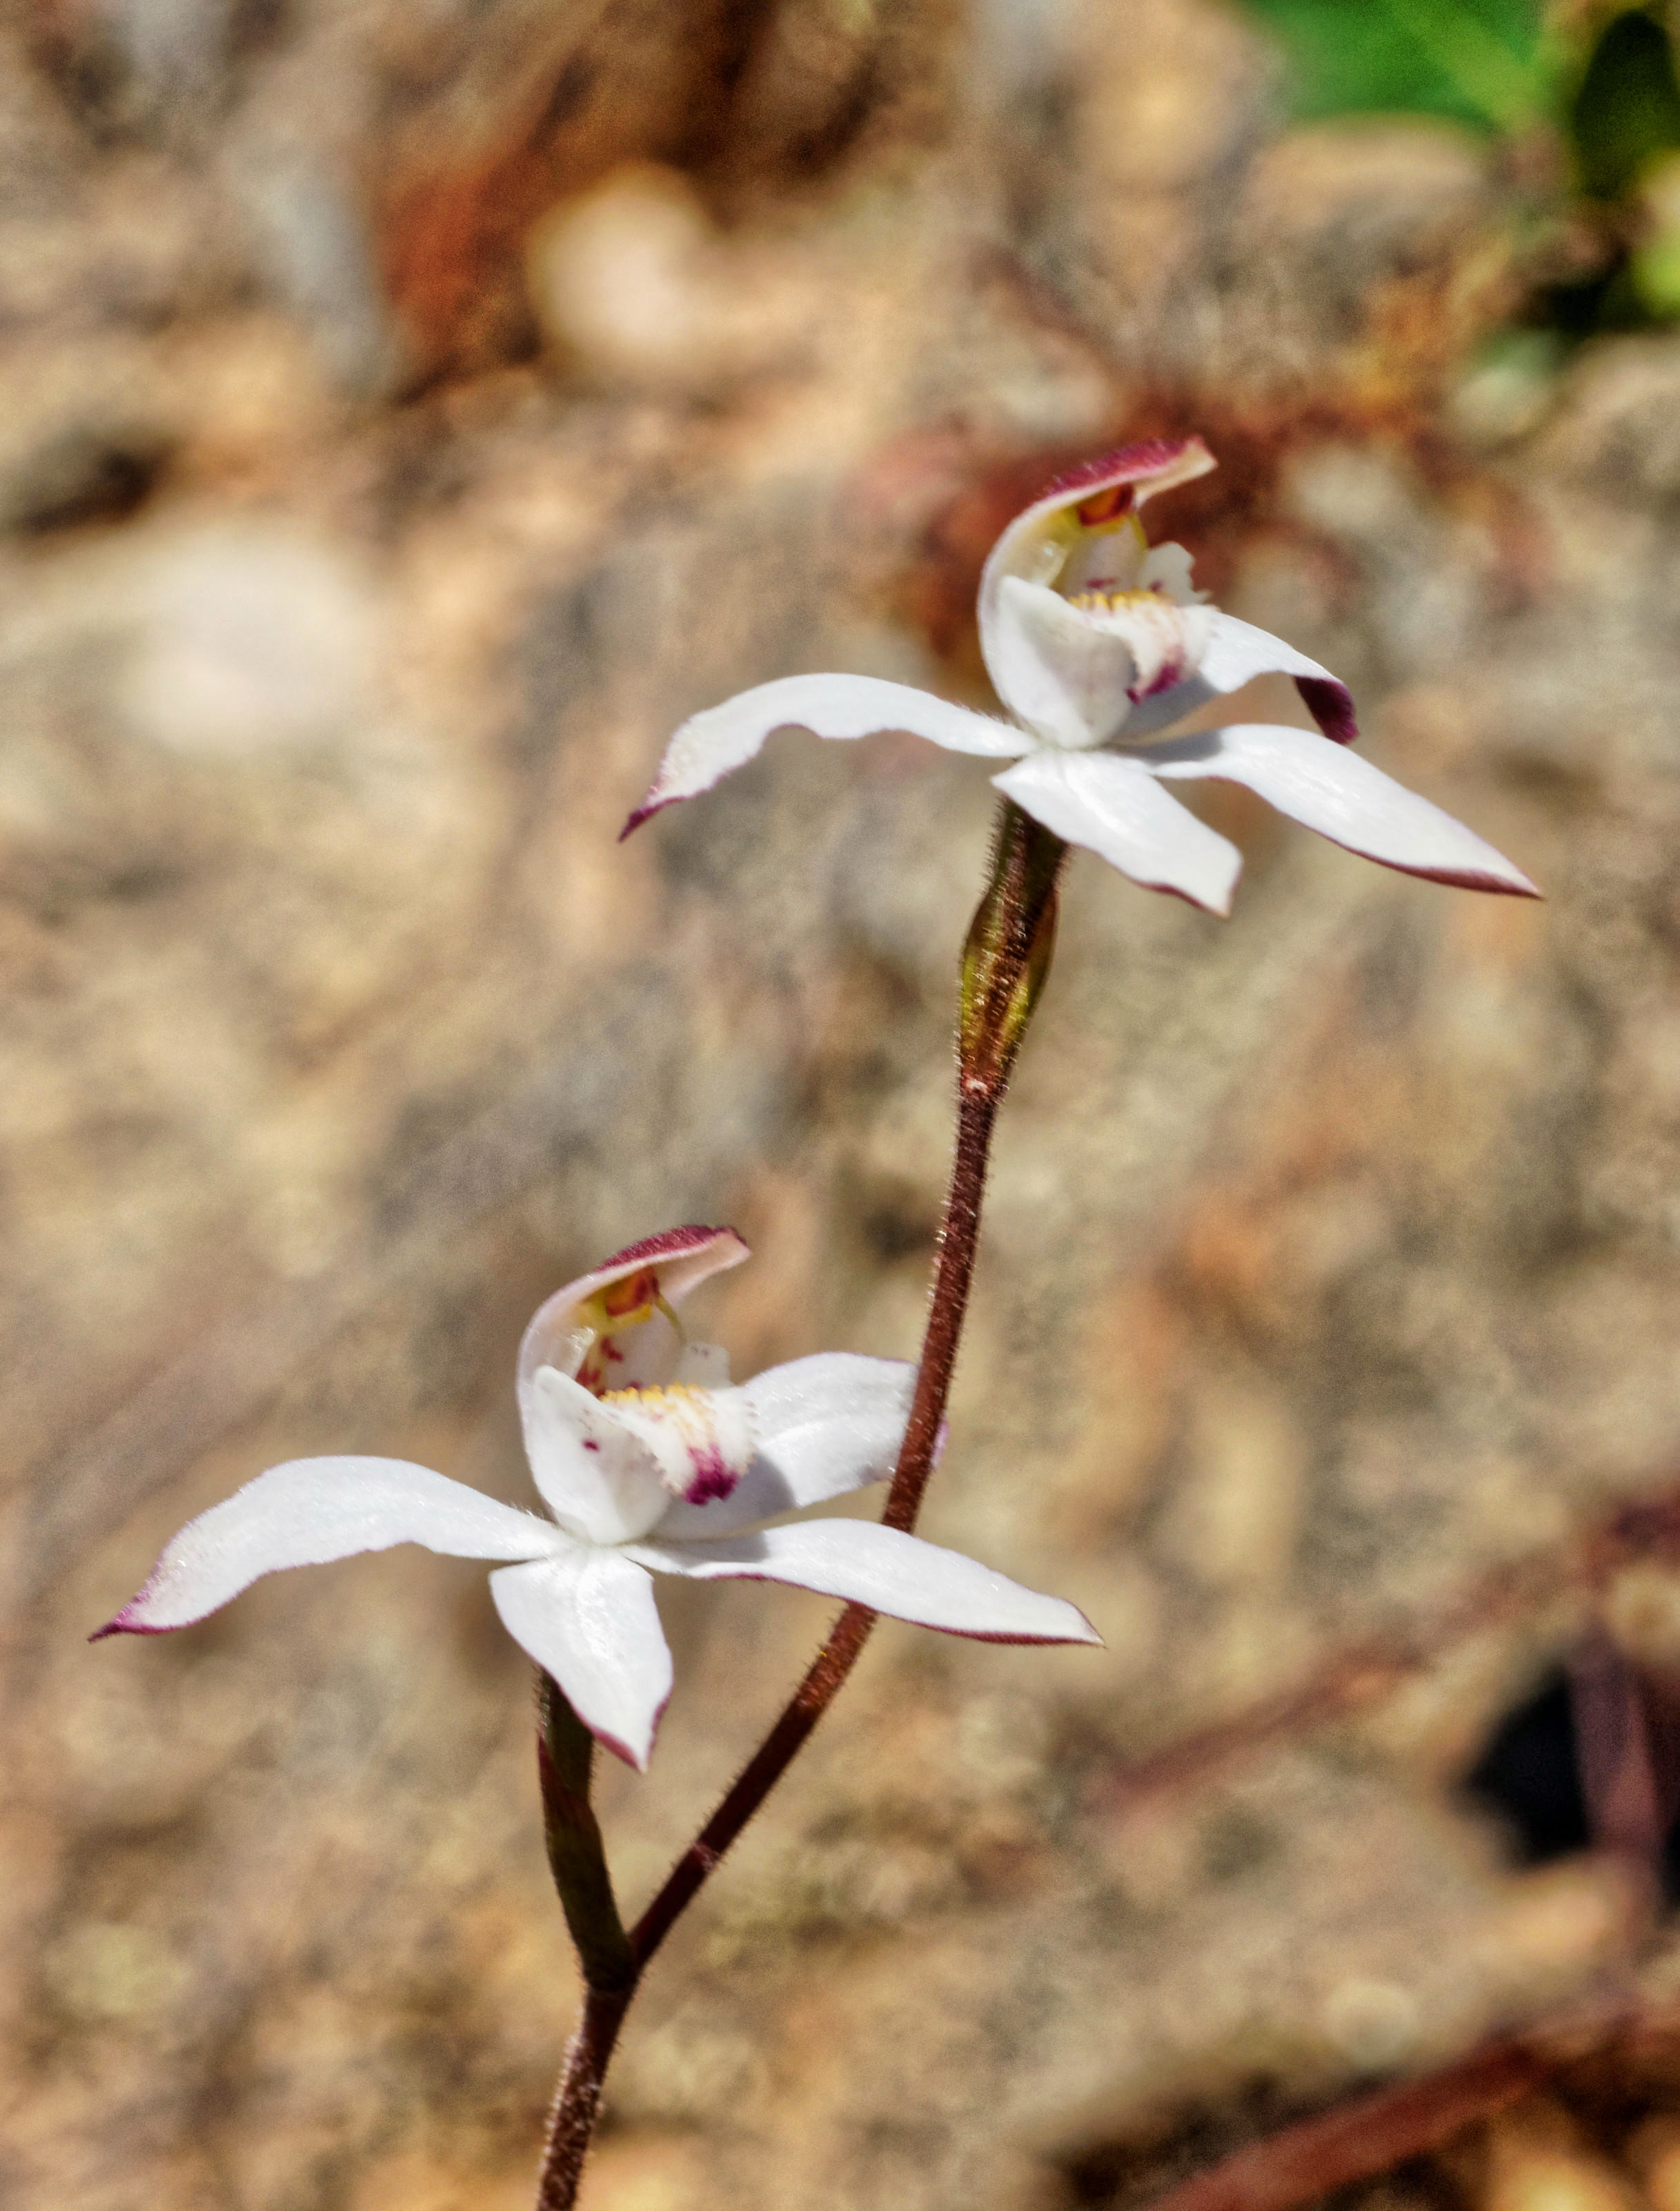 This should be Caladenia-3.jpeg.  Is it missing?